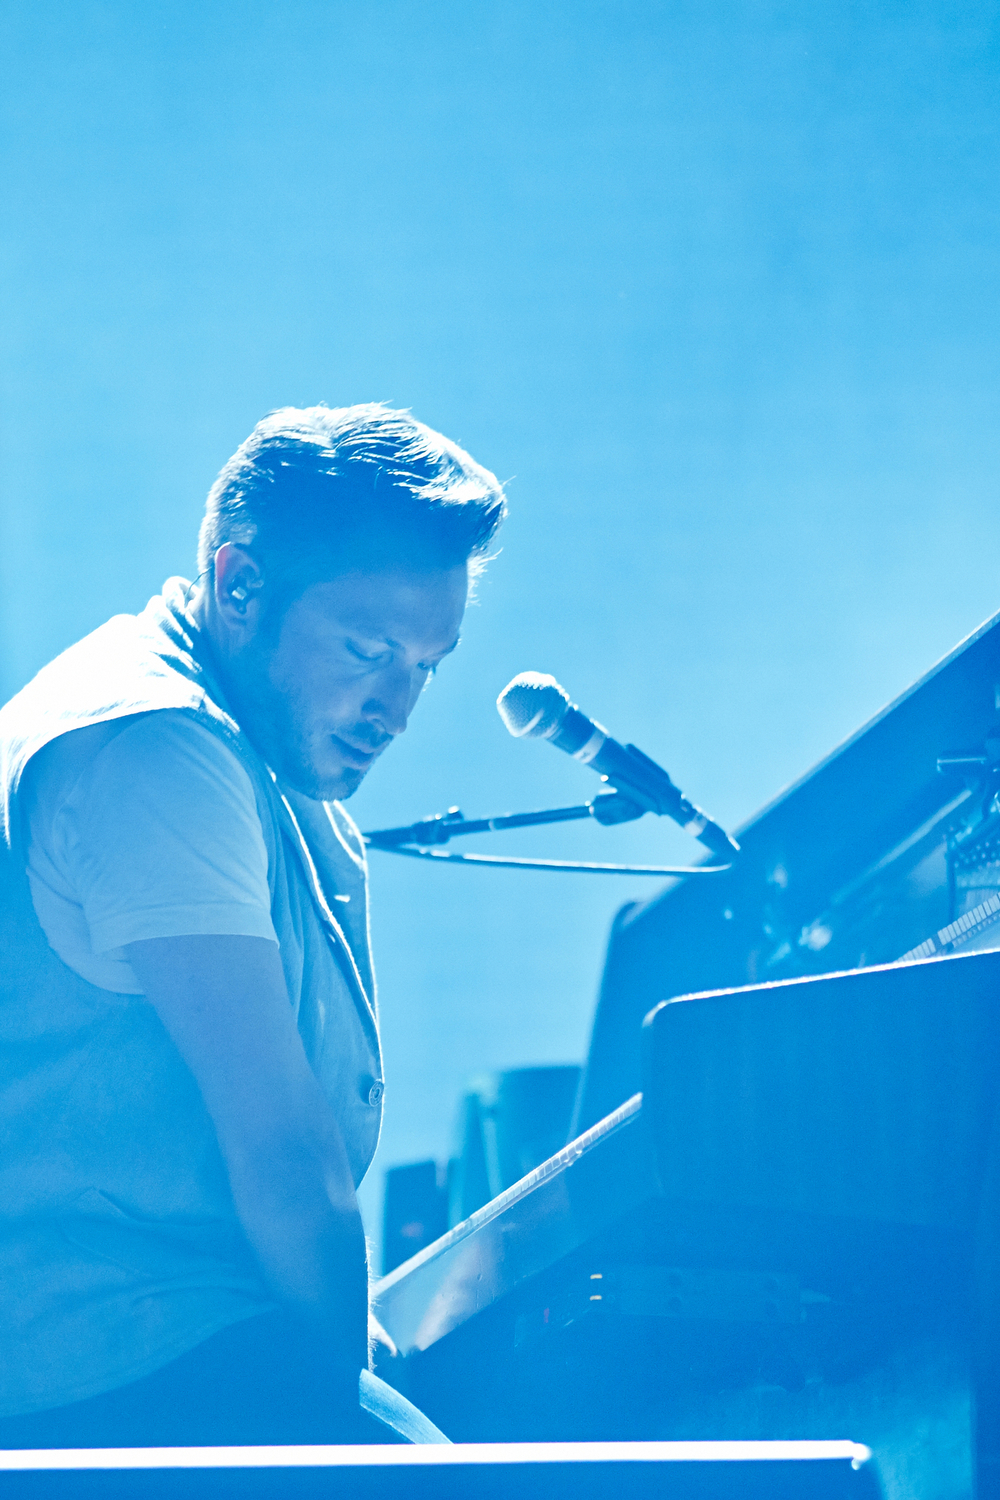 Mumford_And_Sons_At_Xcel_Energy_Center_By_Joe_Lemke_Medium_Res_022.JPG